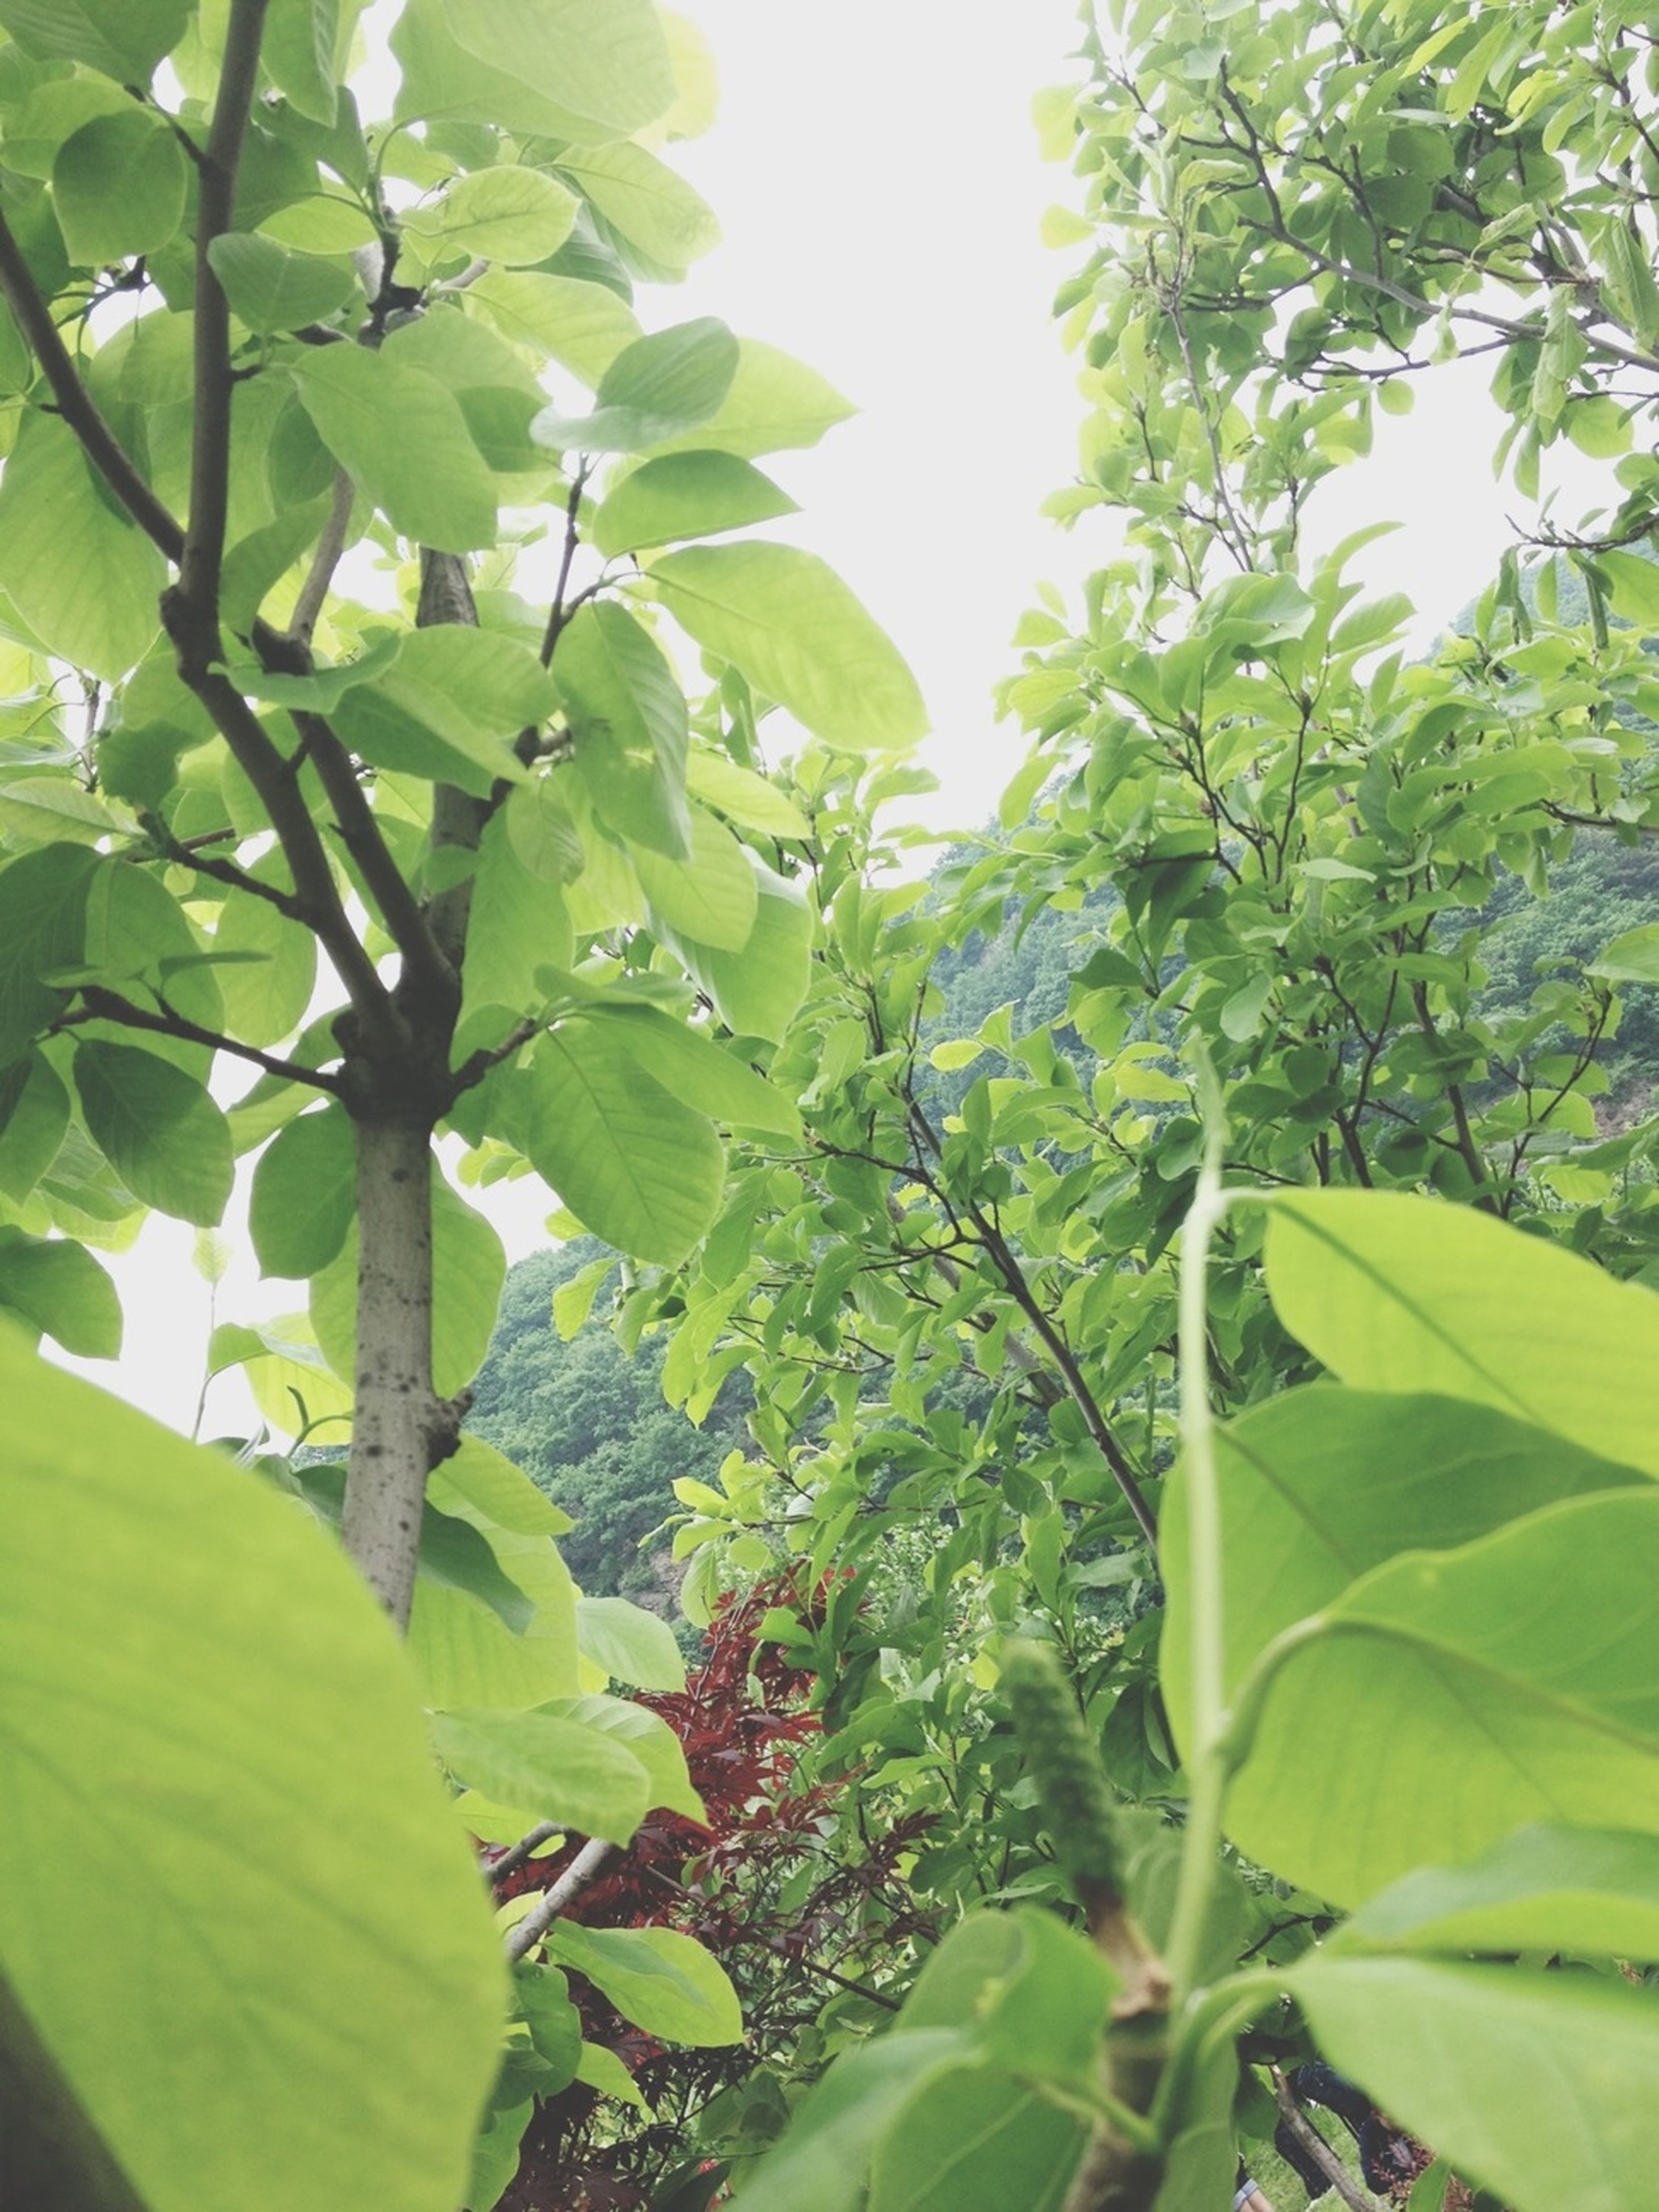 leaf, growth, green color, tree, low angle view, nature, branch, beauty in nature, plant, lush foliage, green, tranquility, freshness, day, close-up, outdoors, no people, sunlight, leaves, sky